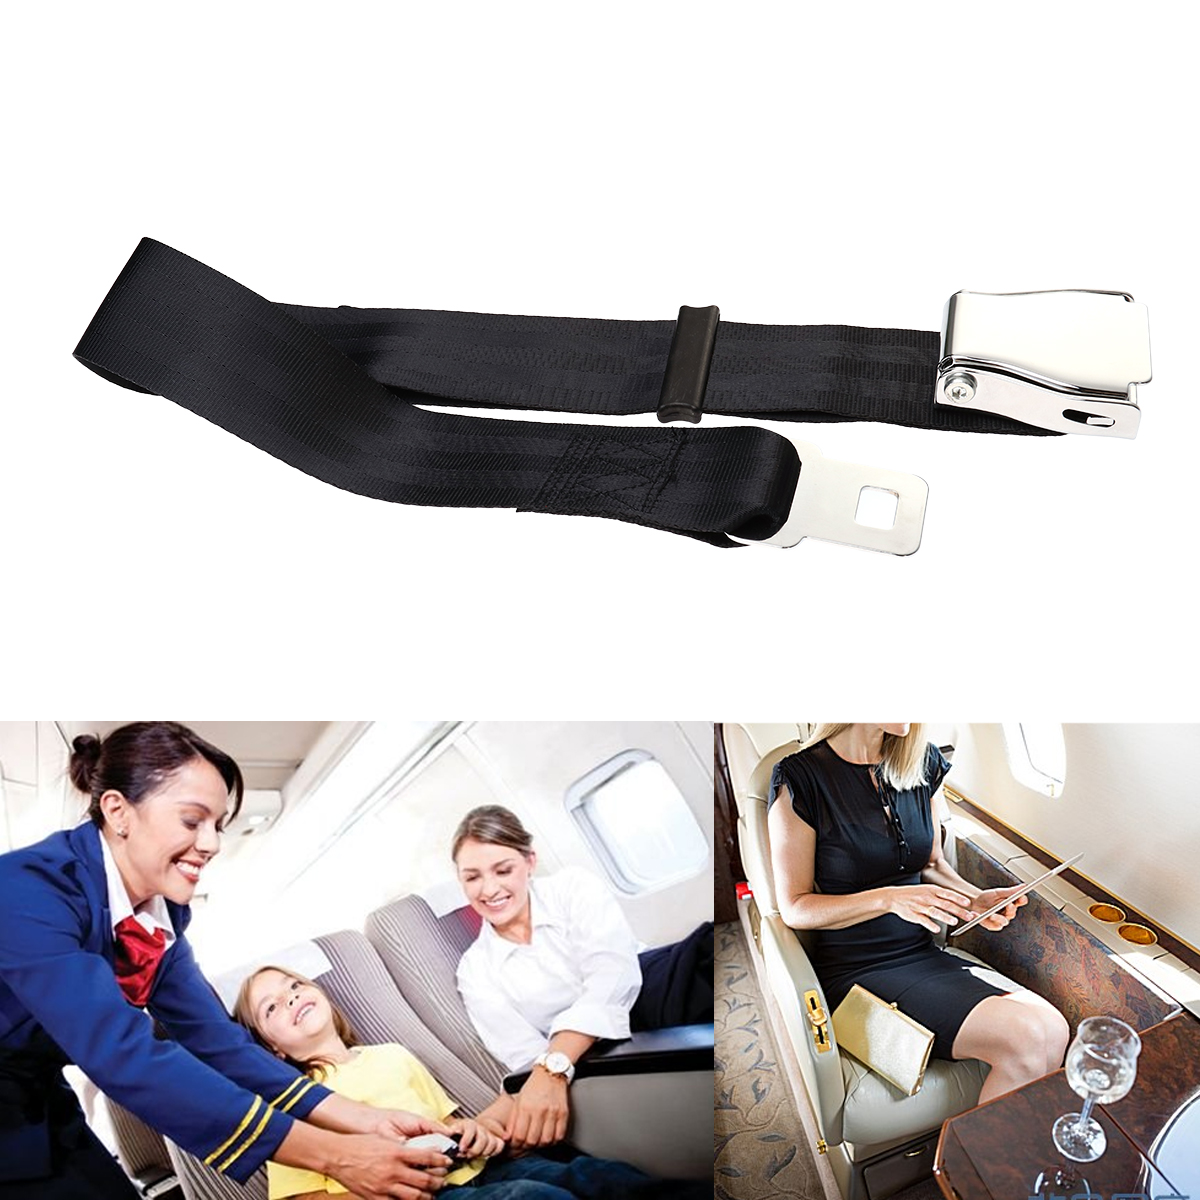 100cm Adjustable Airline Airplane Belt With Buckle for fat people Extra Long Seat Belt Extender Aeroplane Major Airline Car image